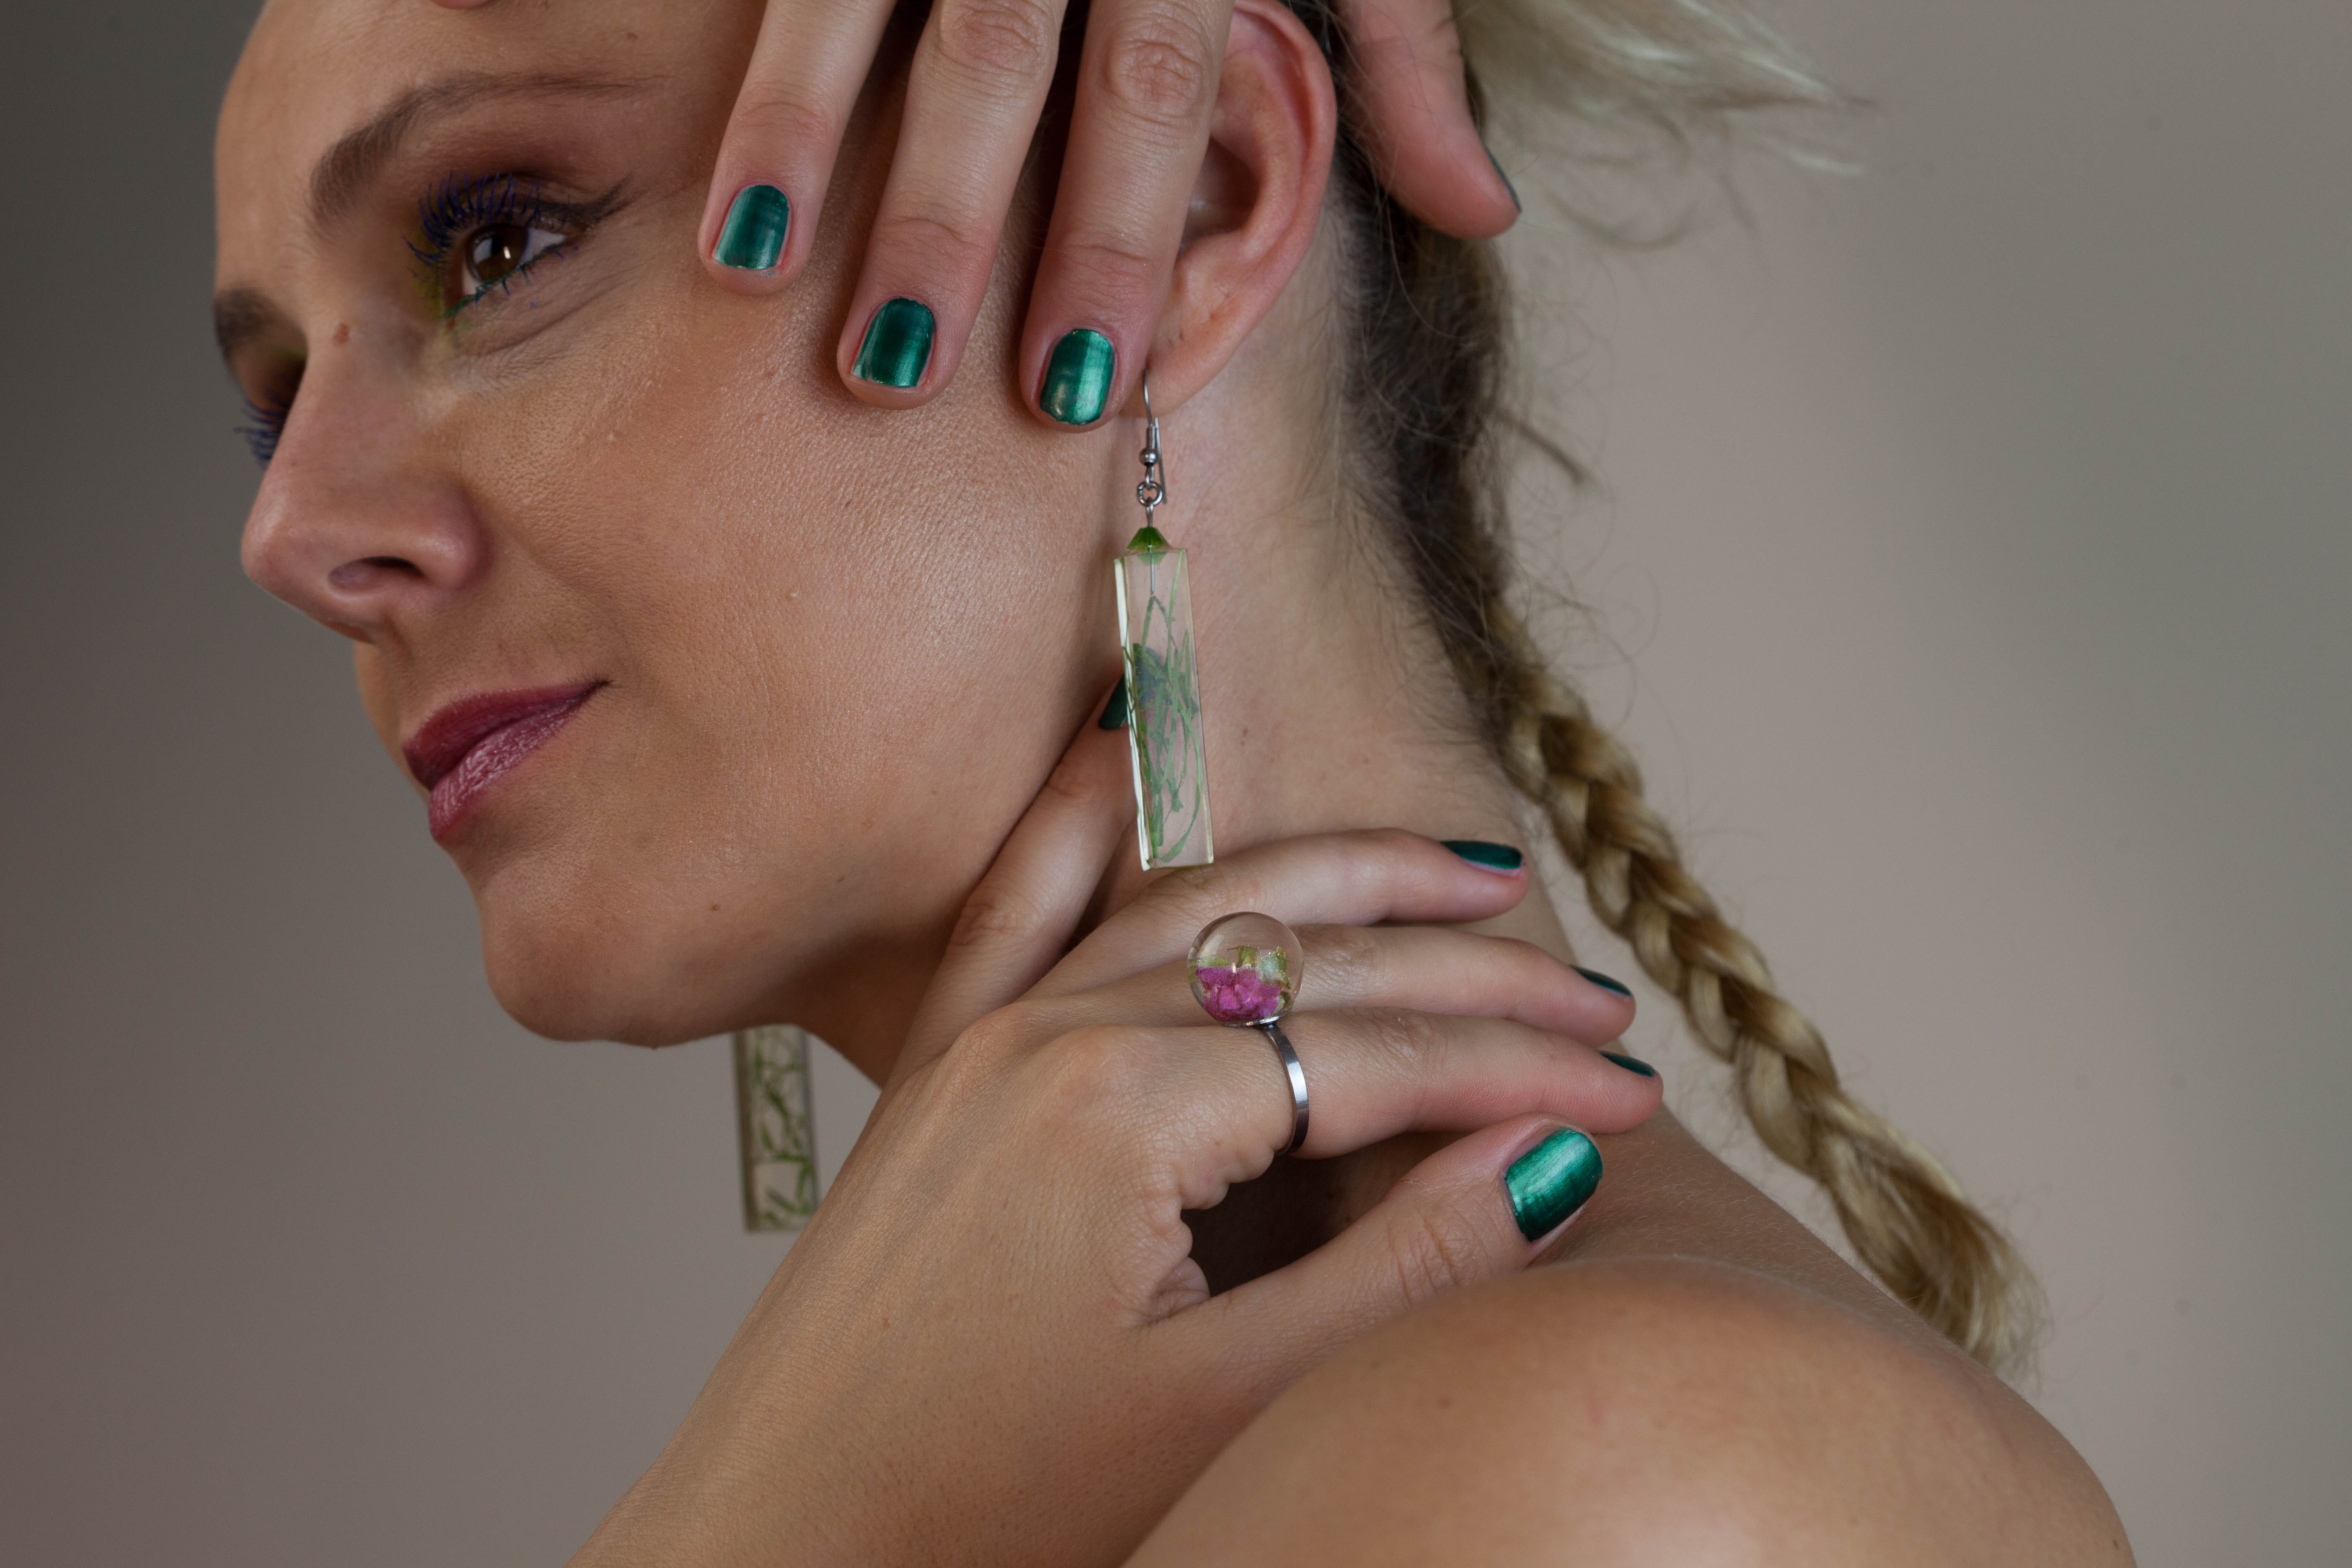 Woman Wearing Earrings While Holding Her Neck